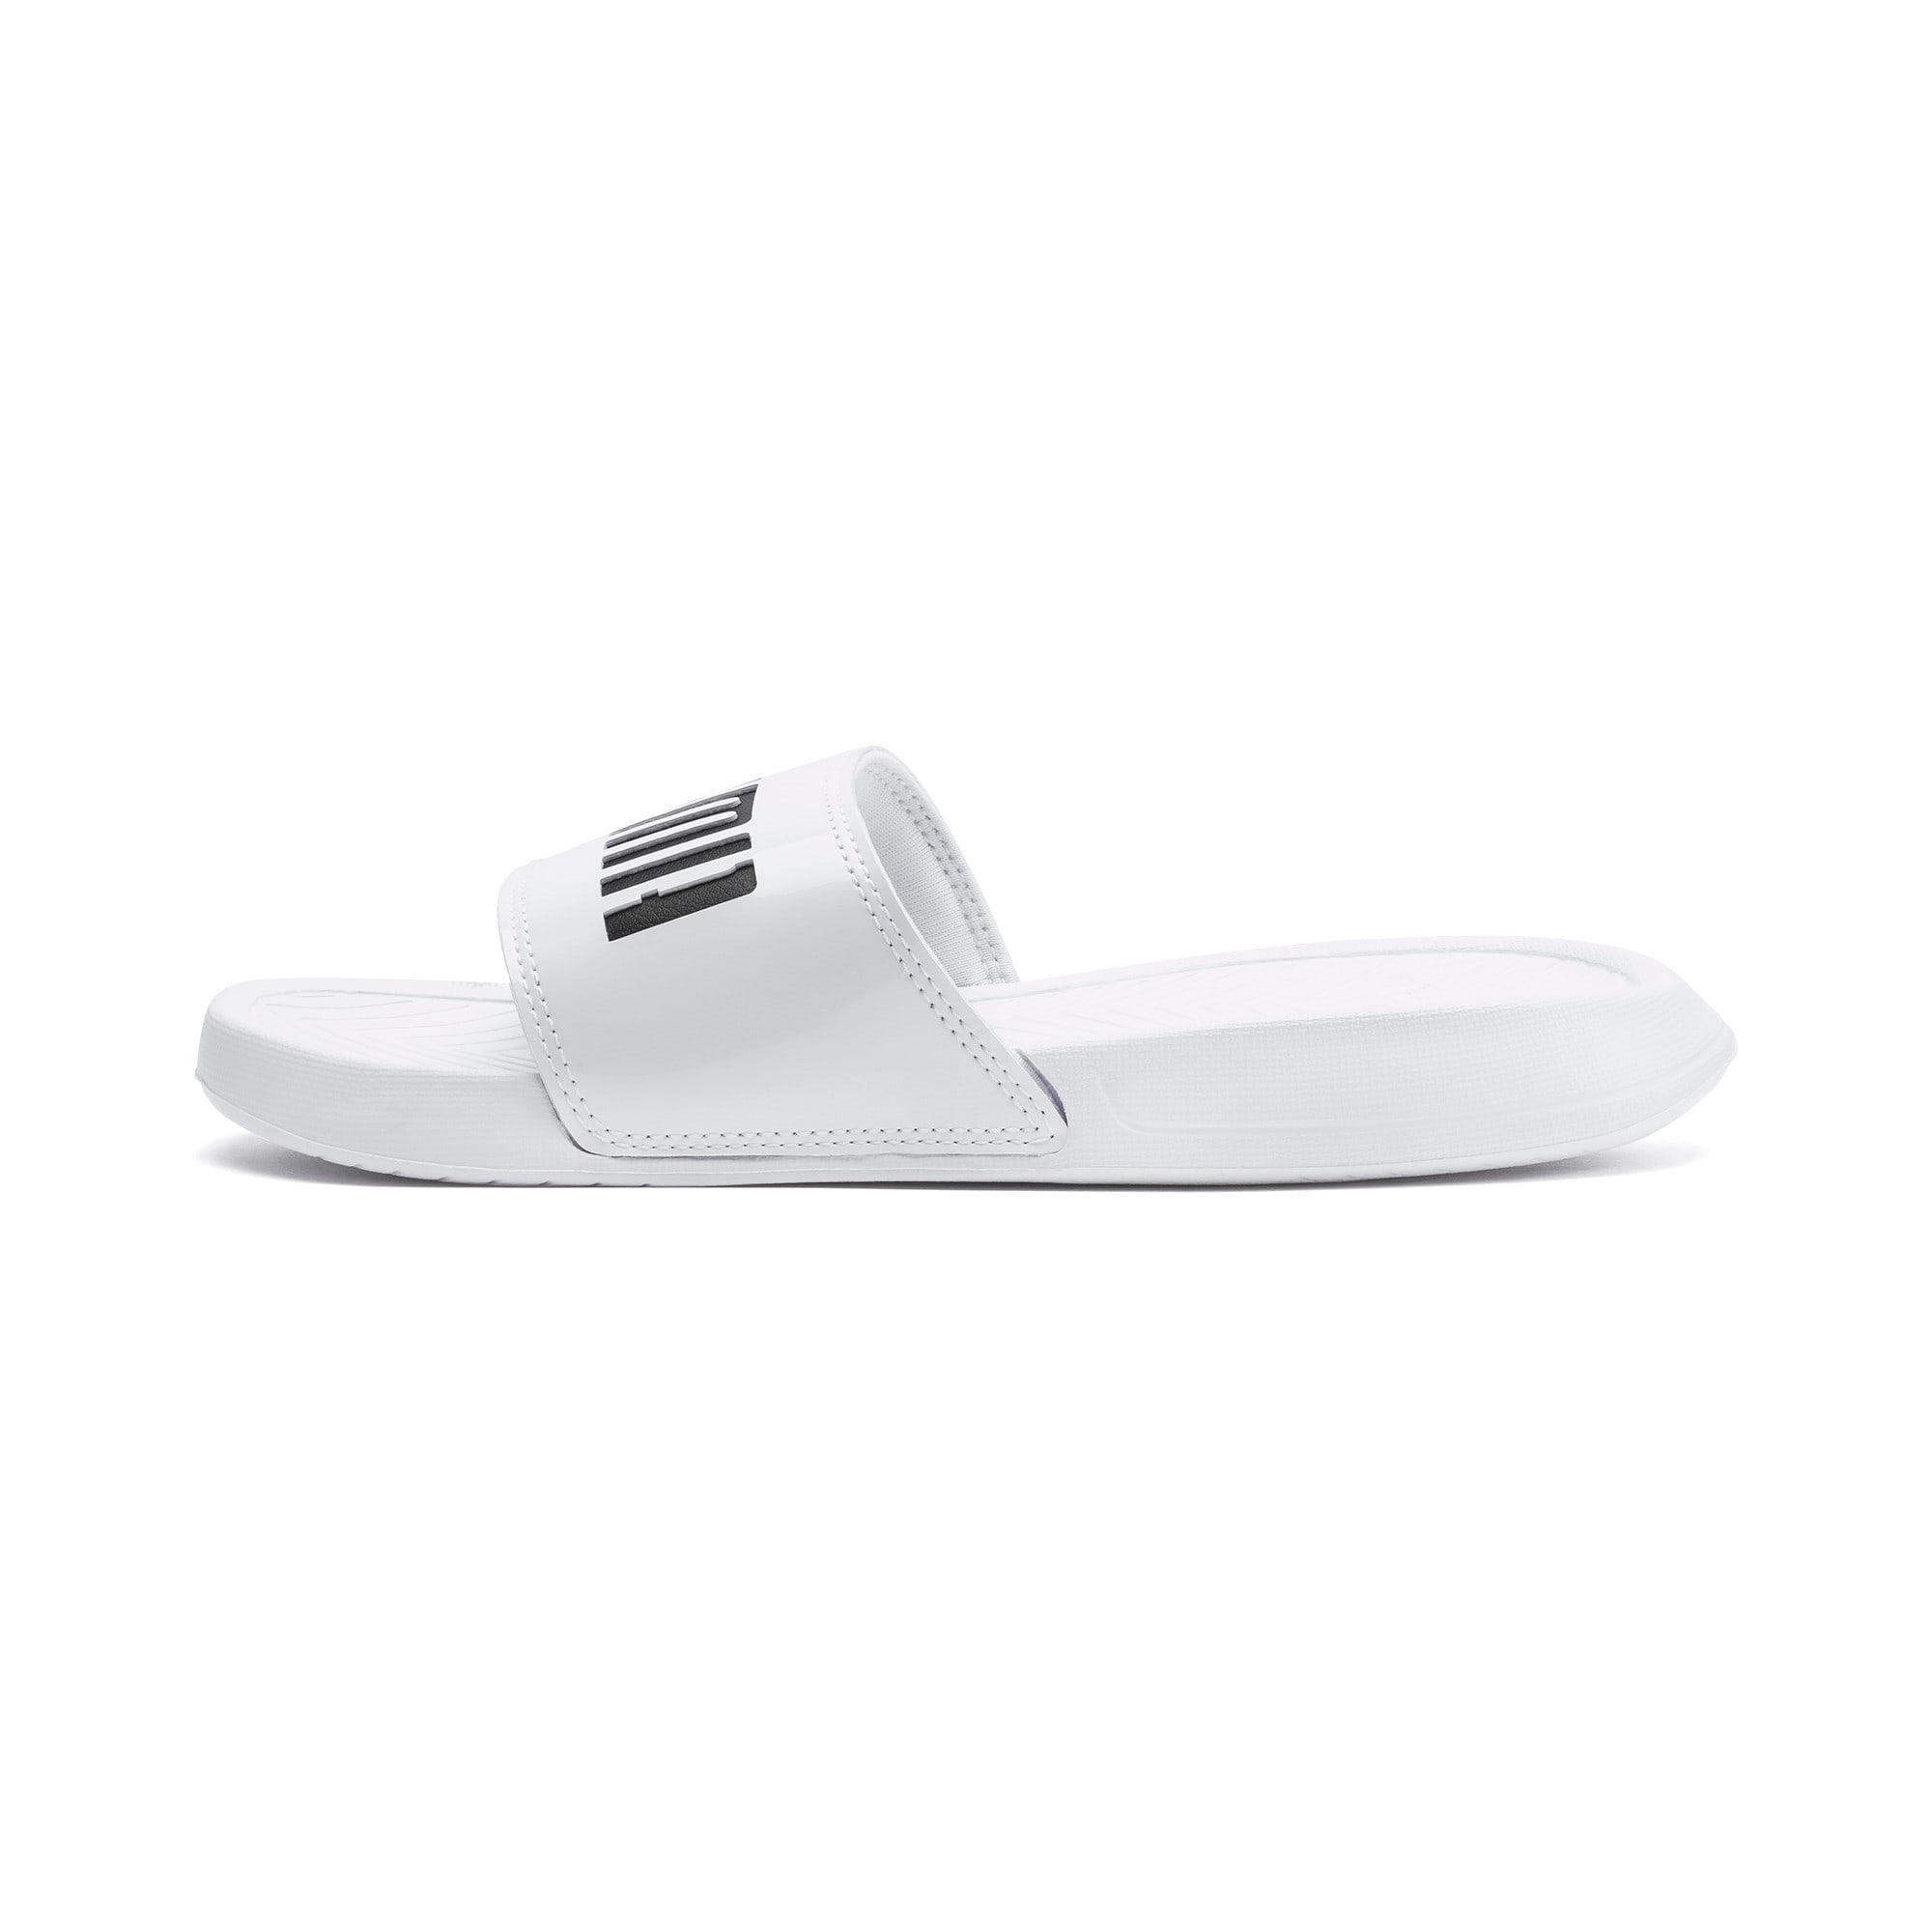 Thumbnail 1 of Popcat Patent Women's Sandals, Puma White-Puma Black, medium